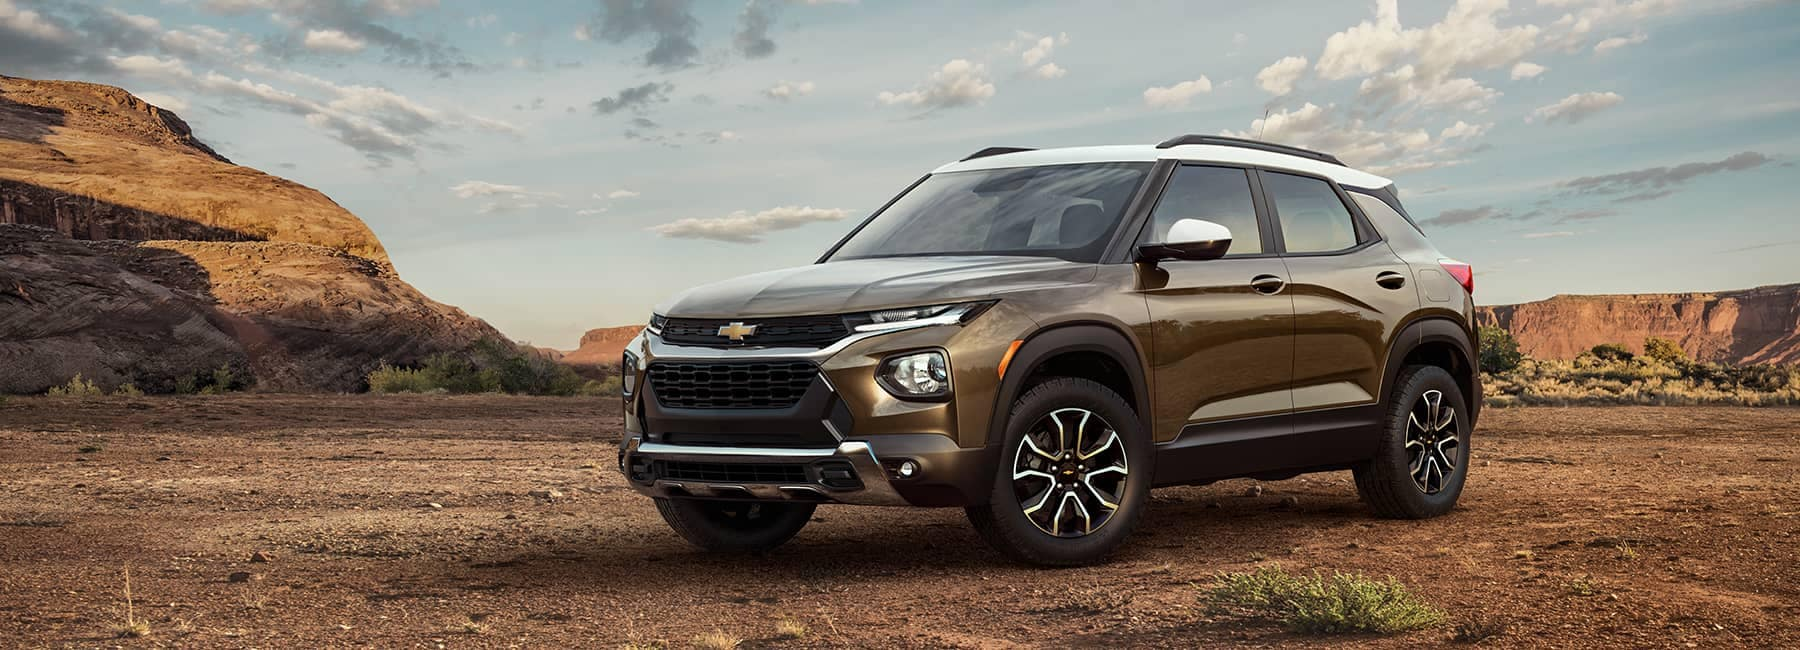 2021 Chevrolet Trailblazer on a Desert Plain